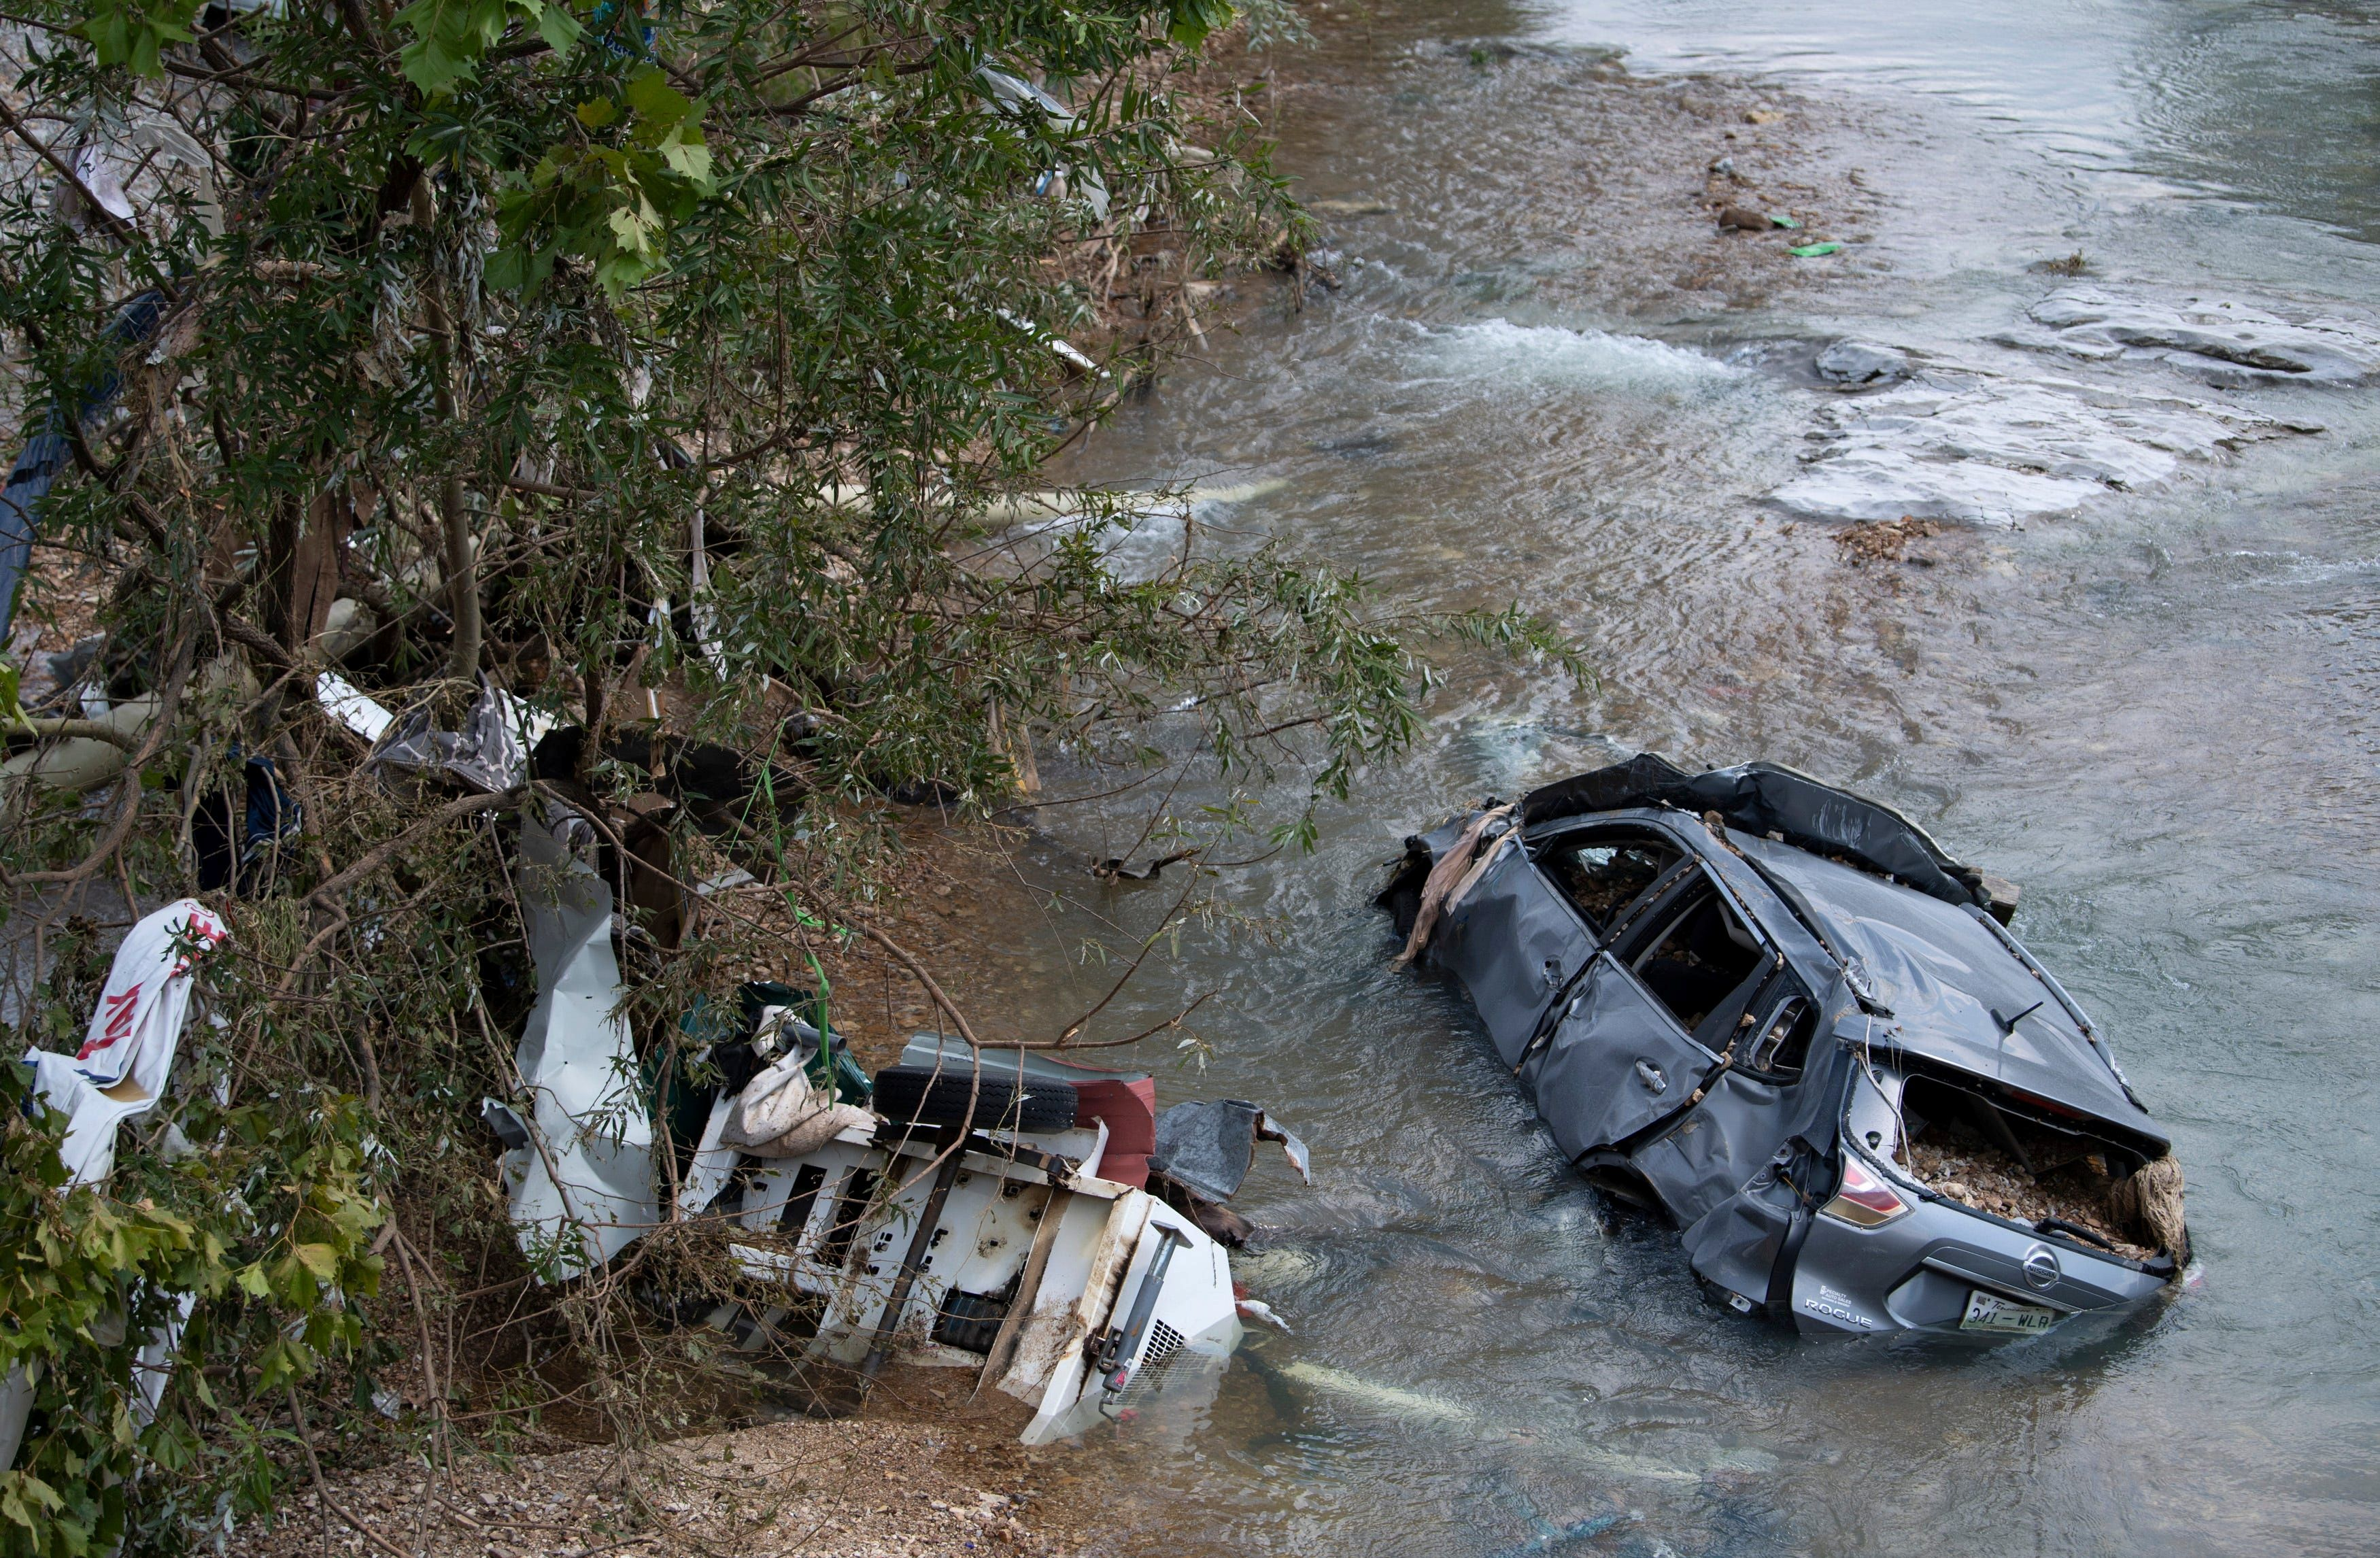 A flooded car and debris are seen after flooding in Trace Creek, Waverly, Tennessee, U.S., August 23, 2021. George Walker IV/The Tennessean/USA Today via REUTERS